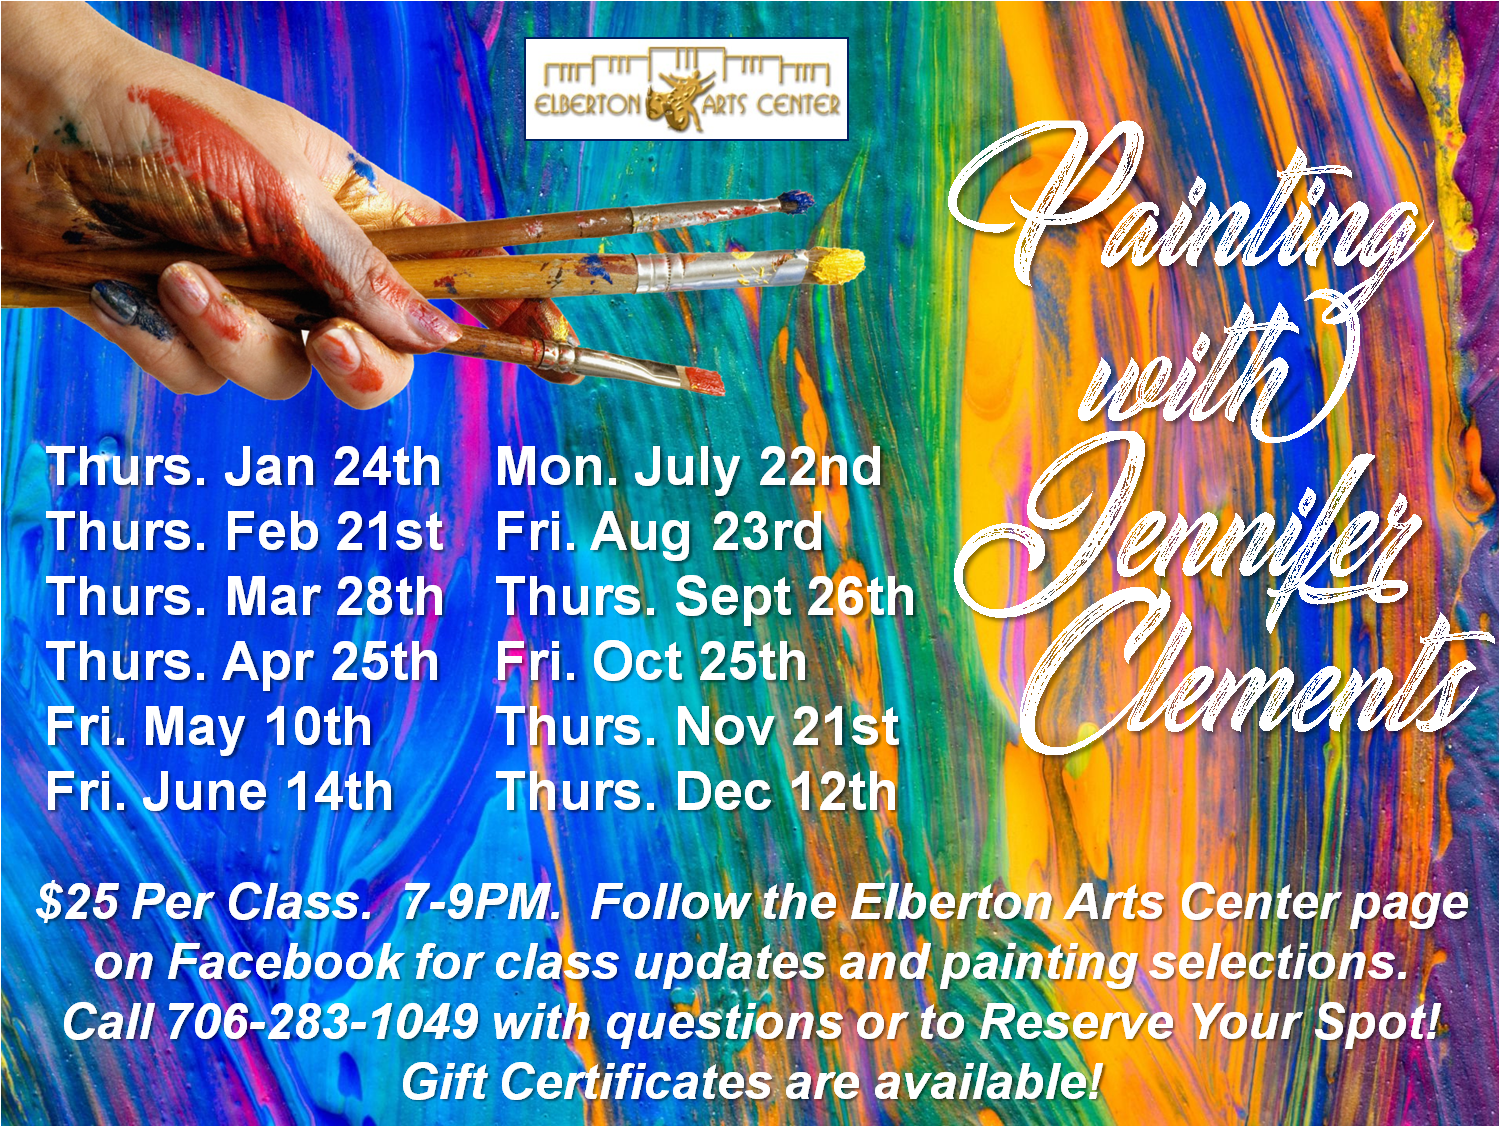 Painting Class with Jennifer Clements Advertisement